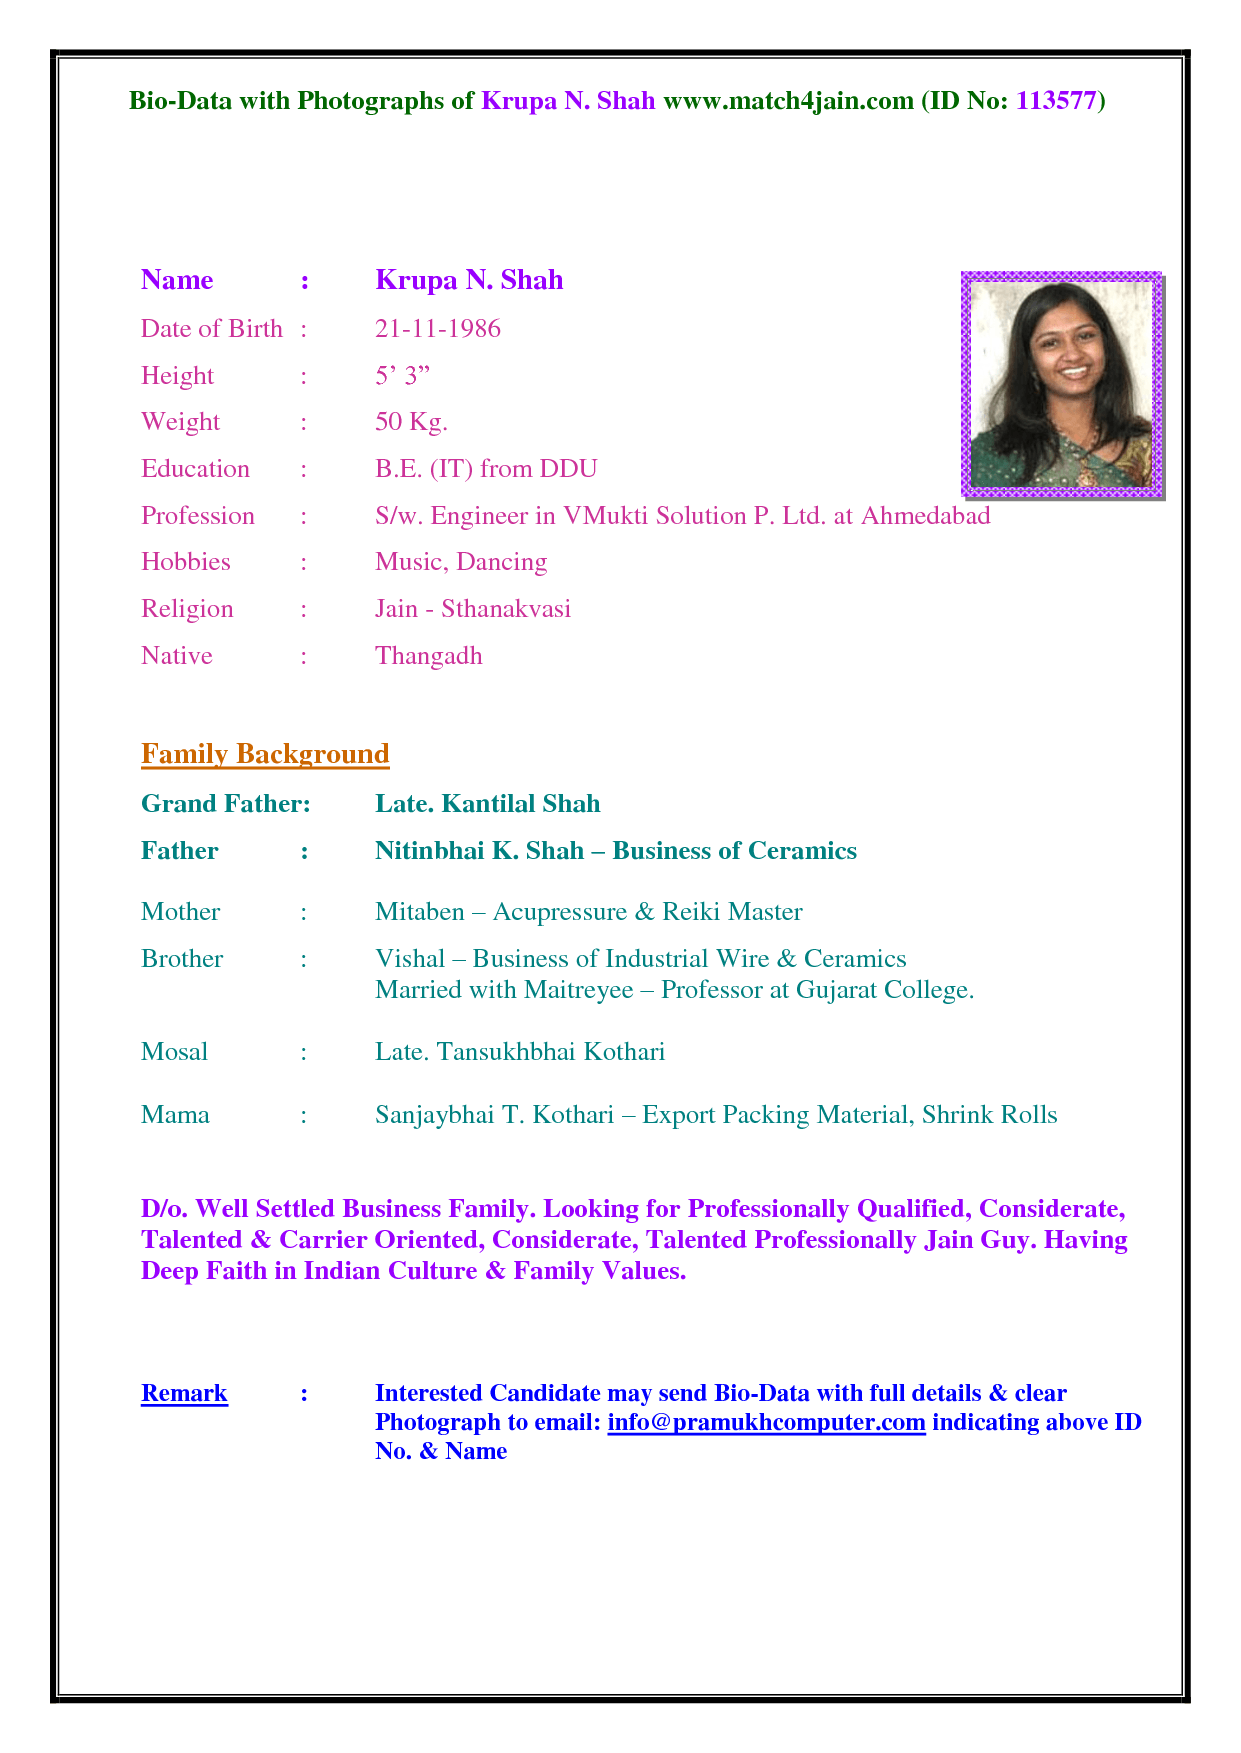 Genial Sample Marriage Biodata Format In Word Easybiodata 1 Trusted Site For  Biodata Creation Marriage Biodata Doc Word Formate Resume Biodata Format  For Marriage ...